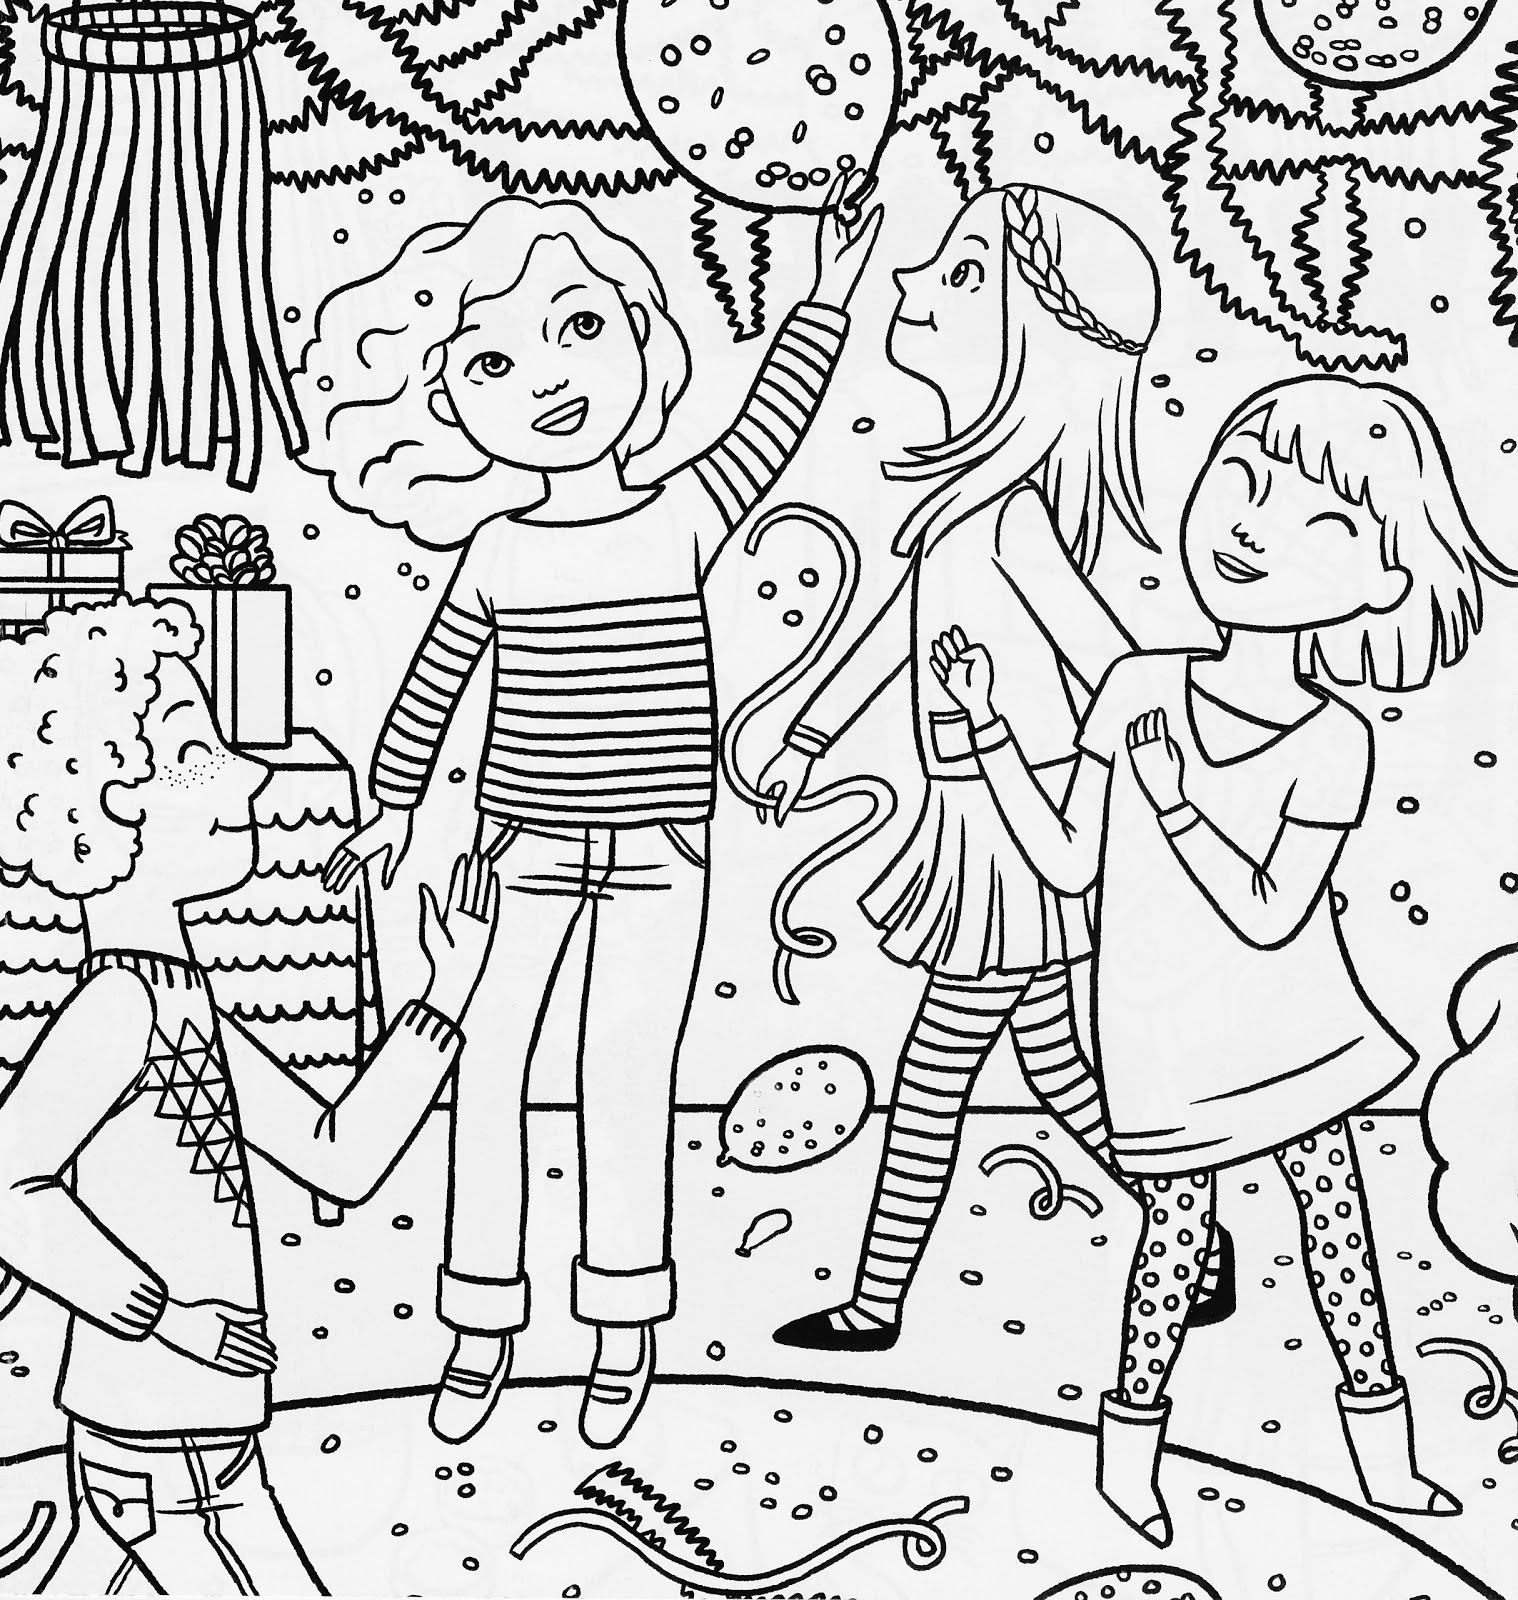 birthday party coloring pictures ; 0fee40ac3b0dcefb2c7d44773b0848e6